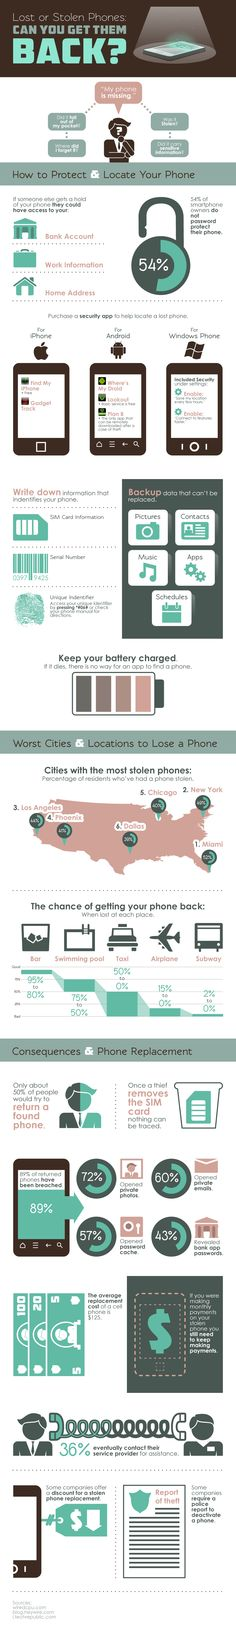 Mobile Guide - How to Get Back Your Lost or Stolen Phones? [Infographic]